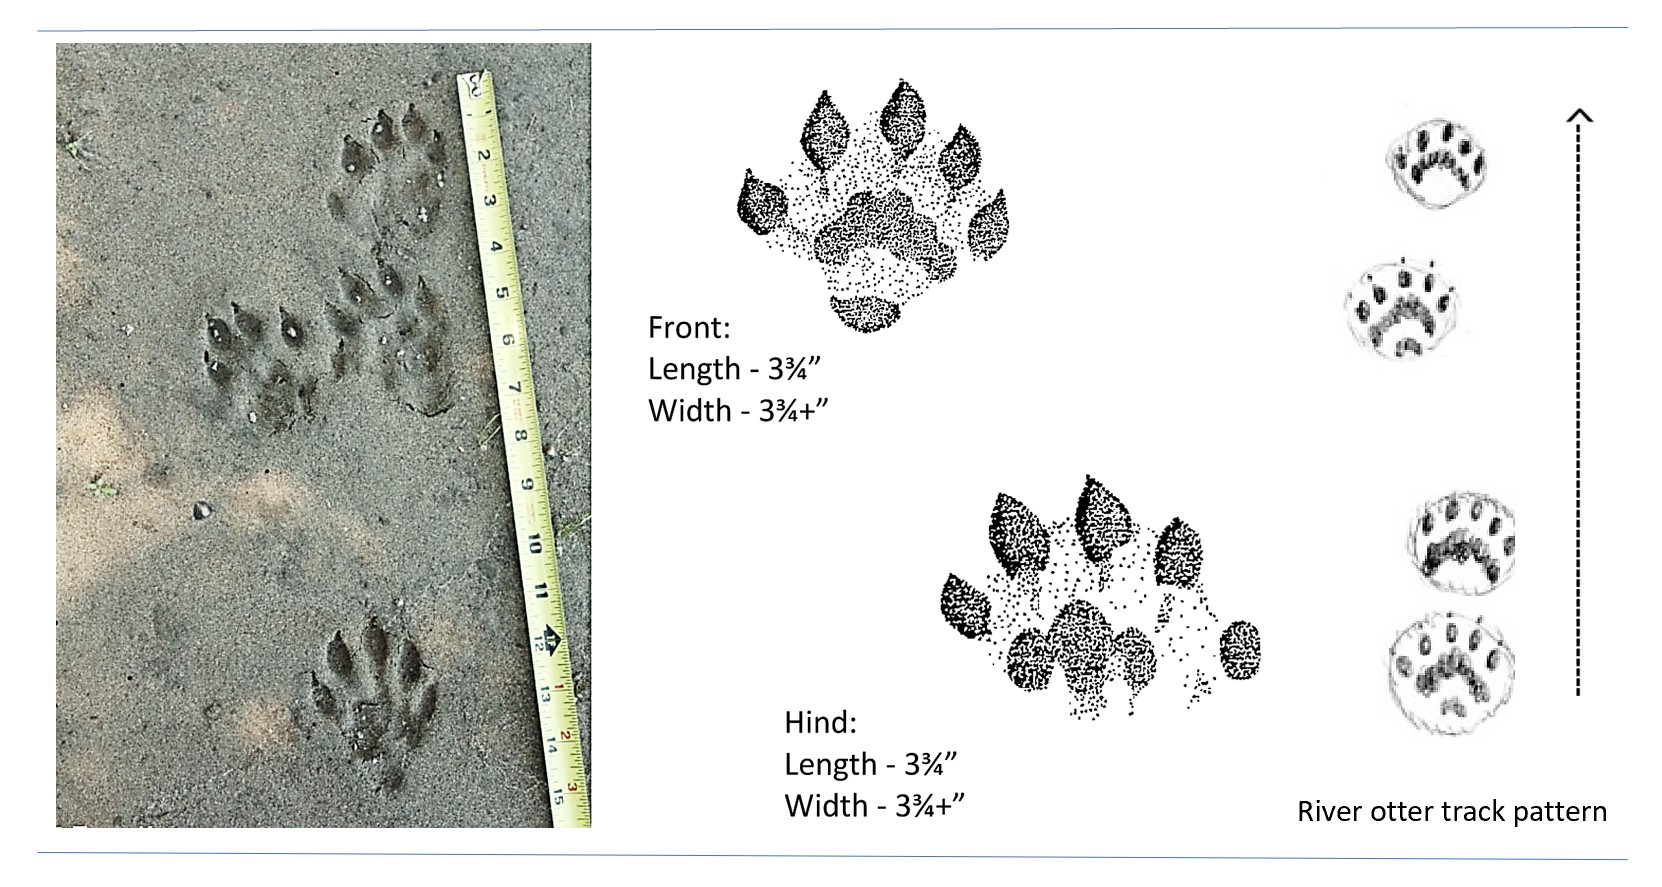 Photo and illustrated tracks of a river otter.